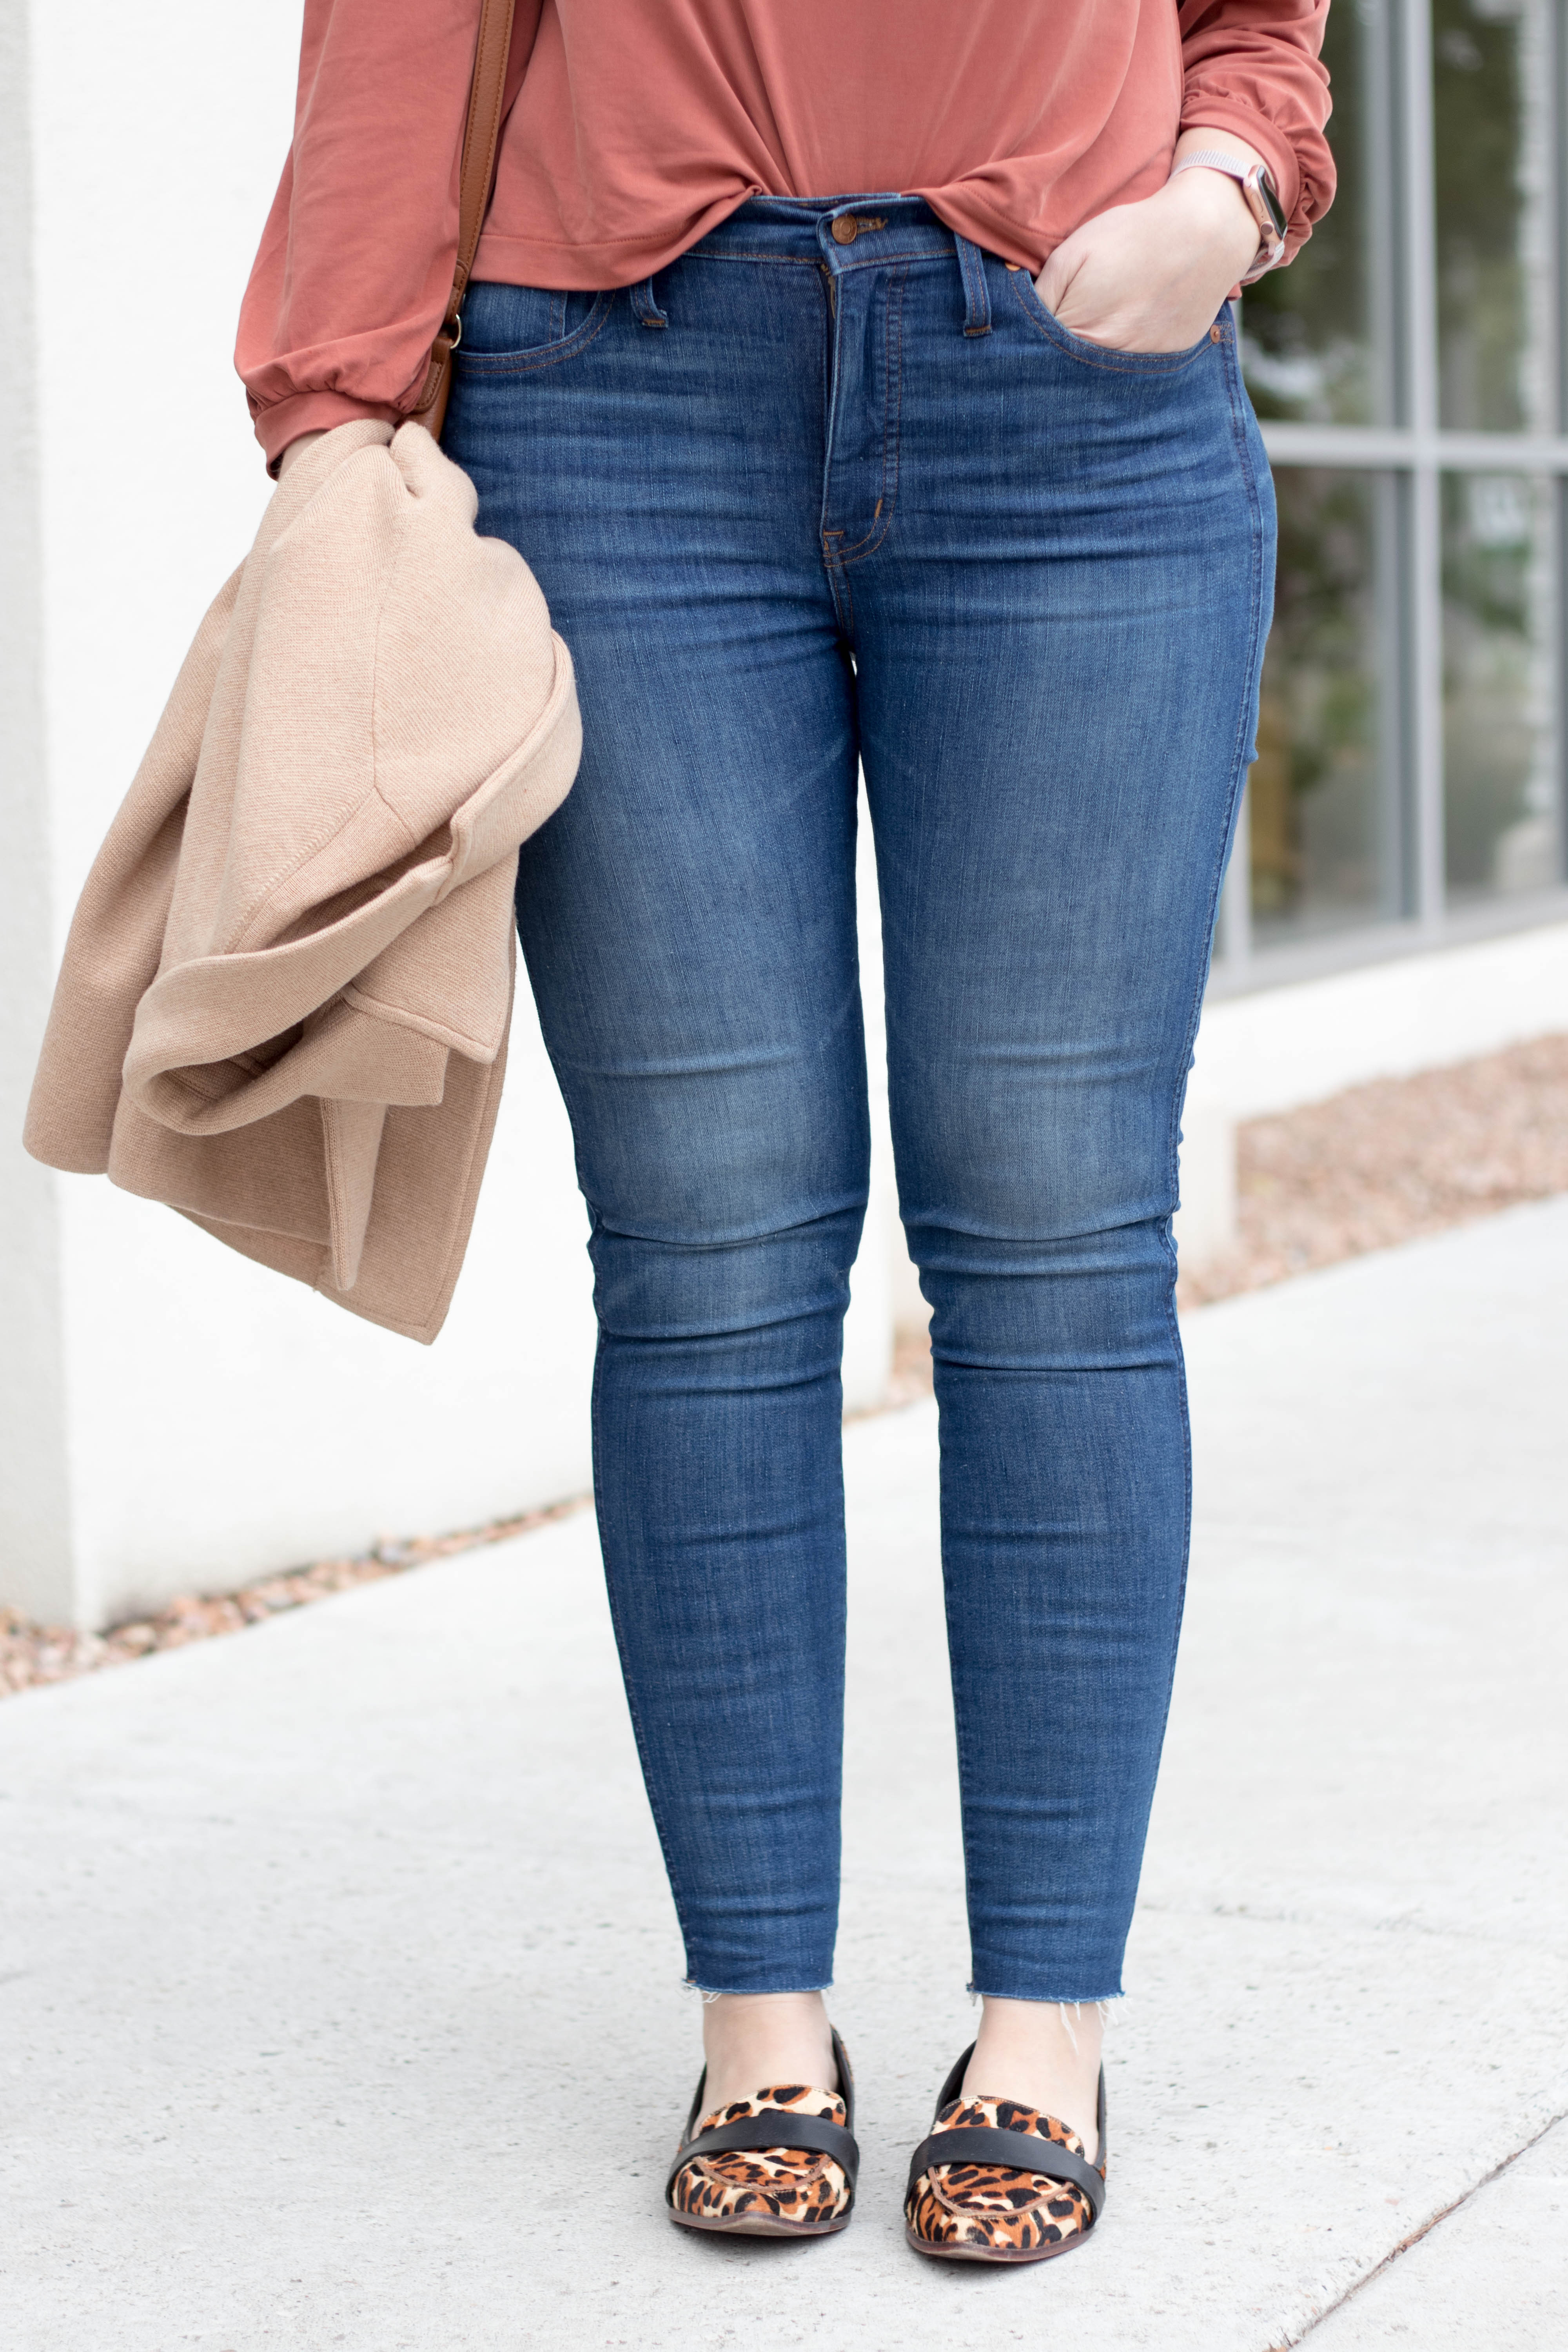 madewell high rise jeans #tallfashion #madewelljeans #madewell #leopardflats